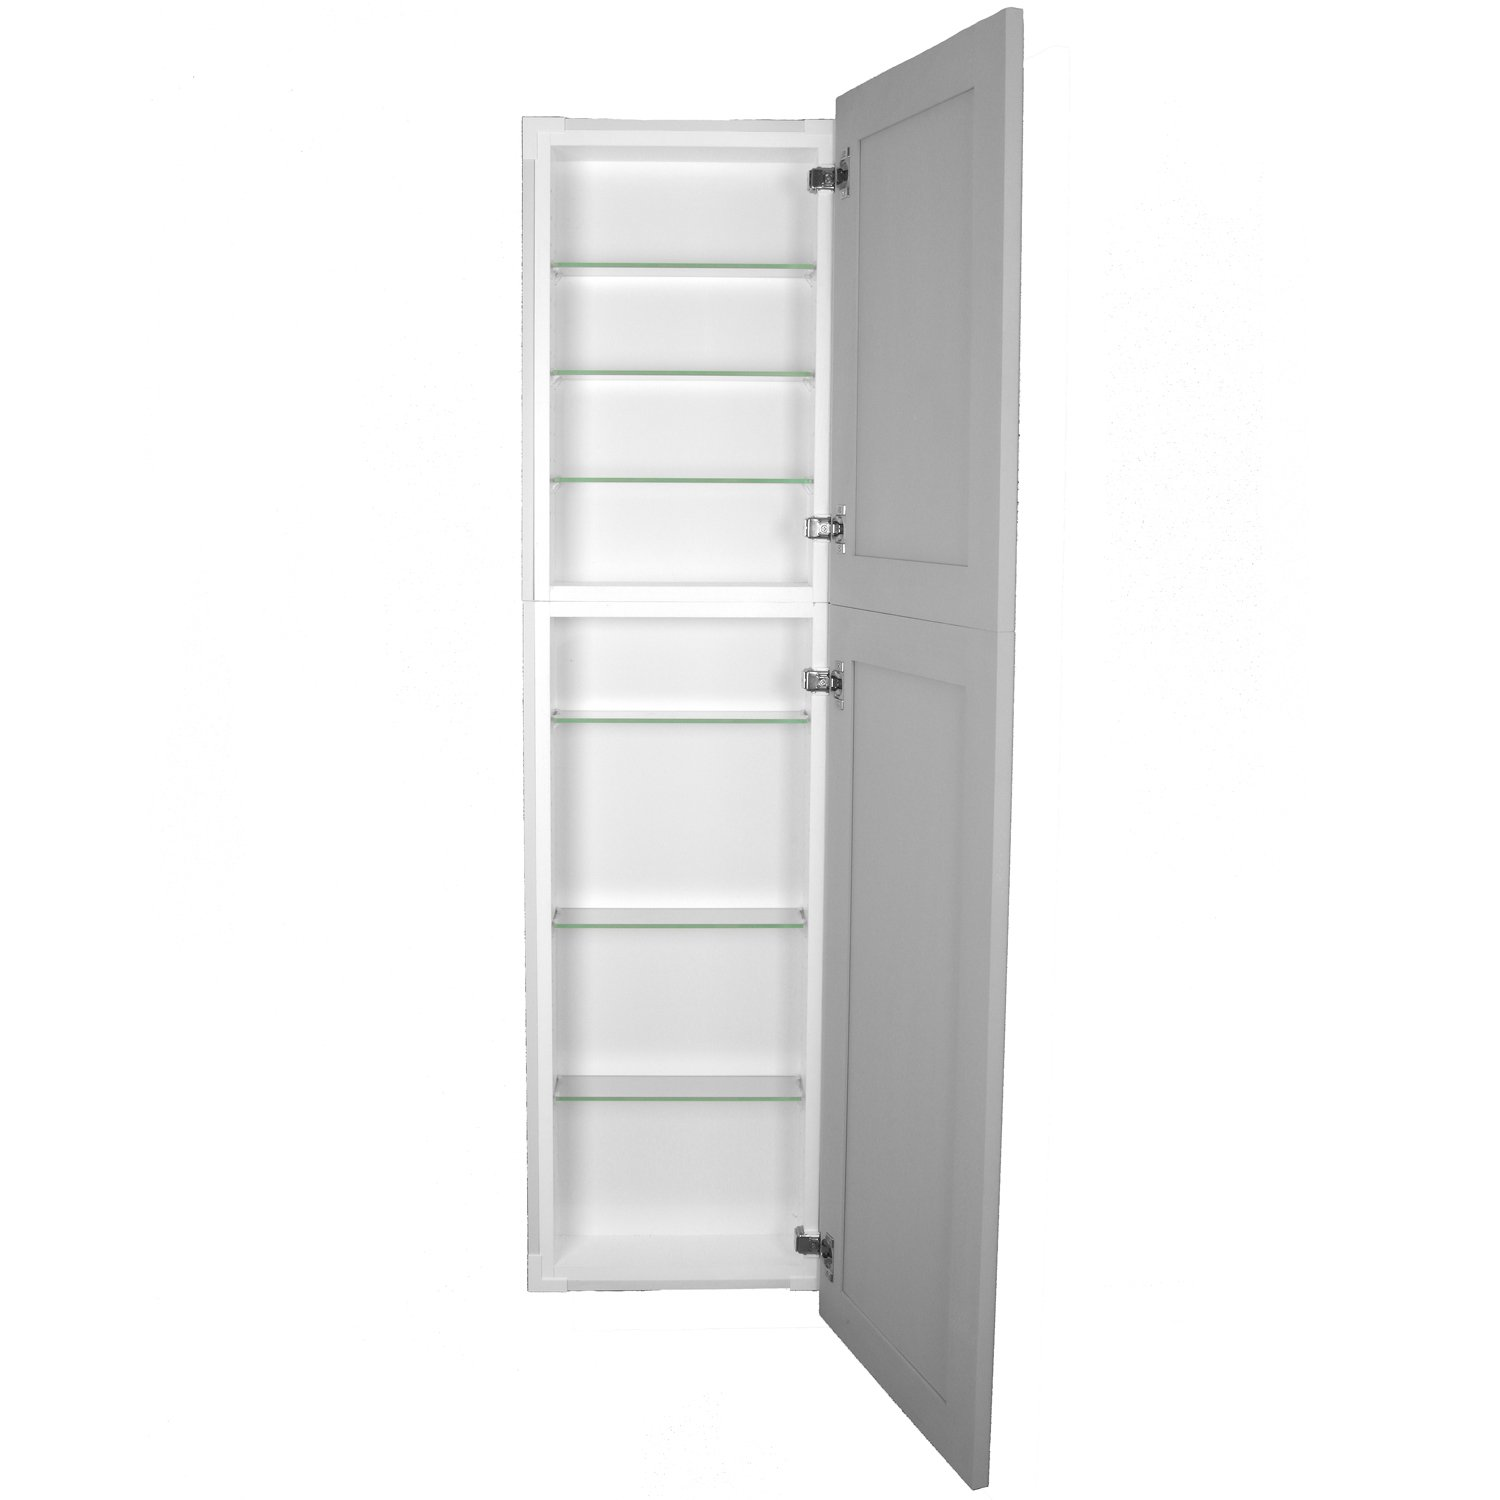 WG Wood Products Shaker Style Frameless Recessed Wall Bathroom Medicine Storage Pantry Cabinet with Multiple Finishes, 50'', Primed/Ready to Paint